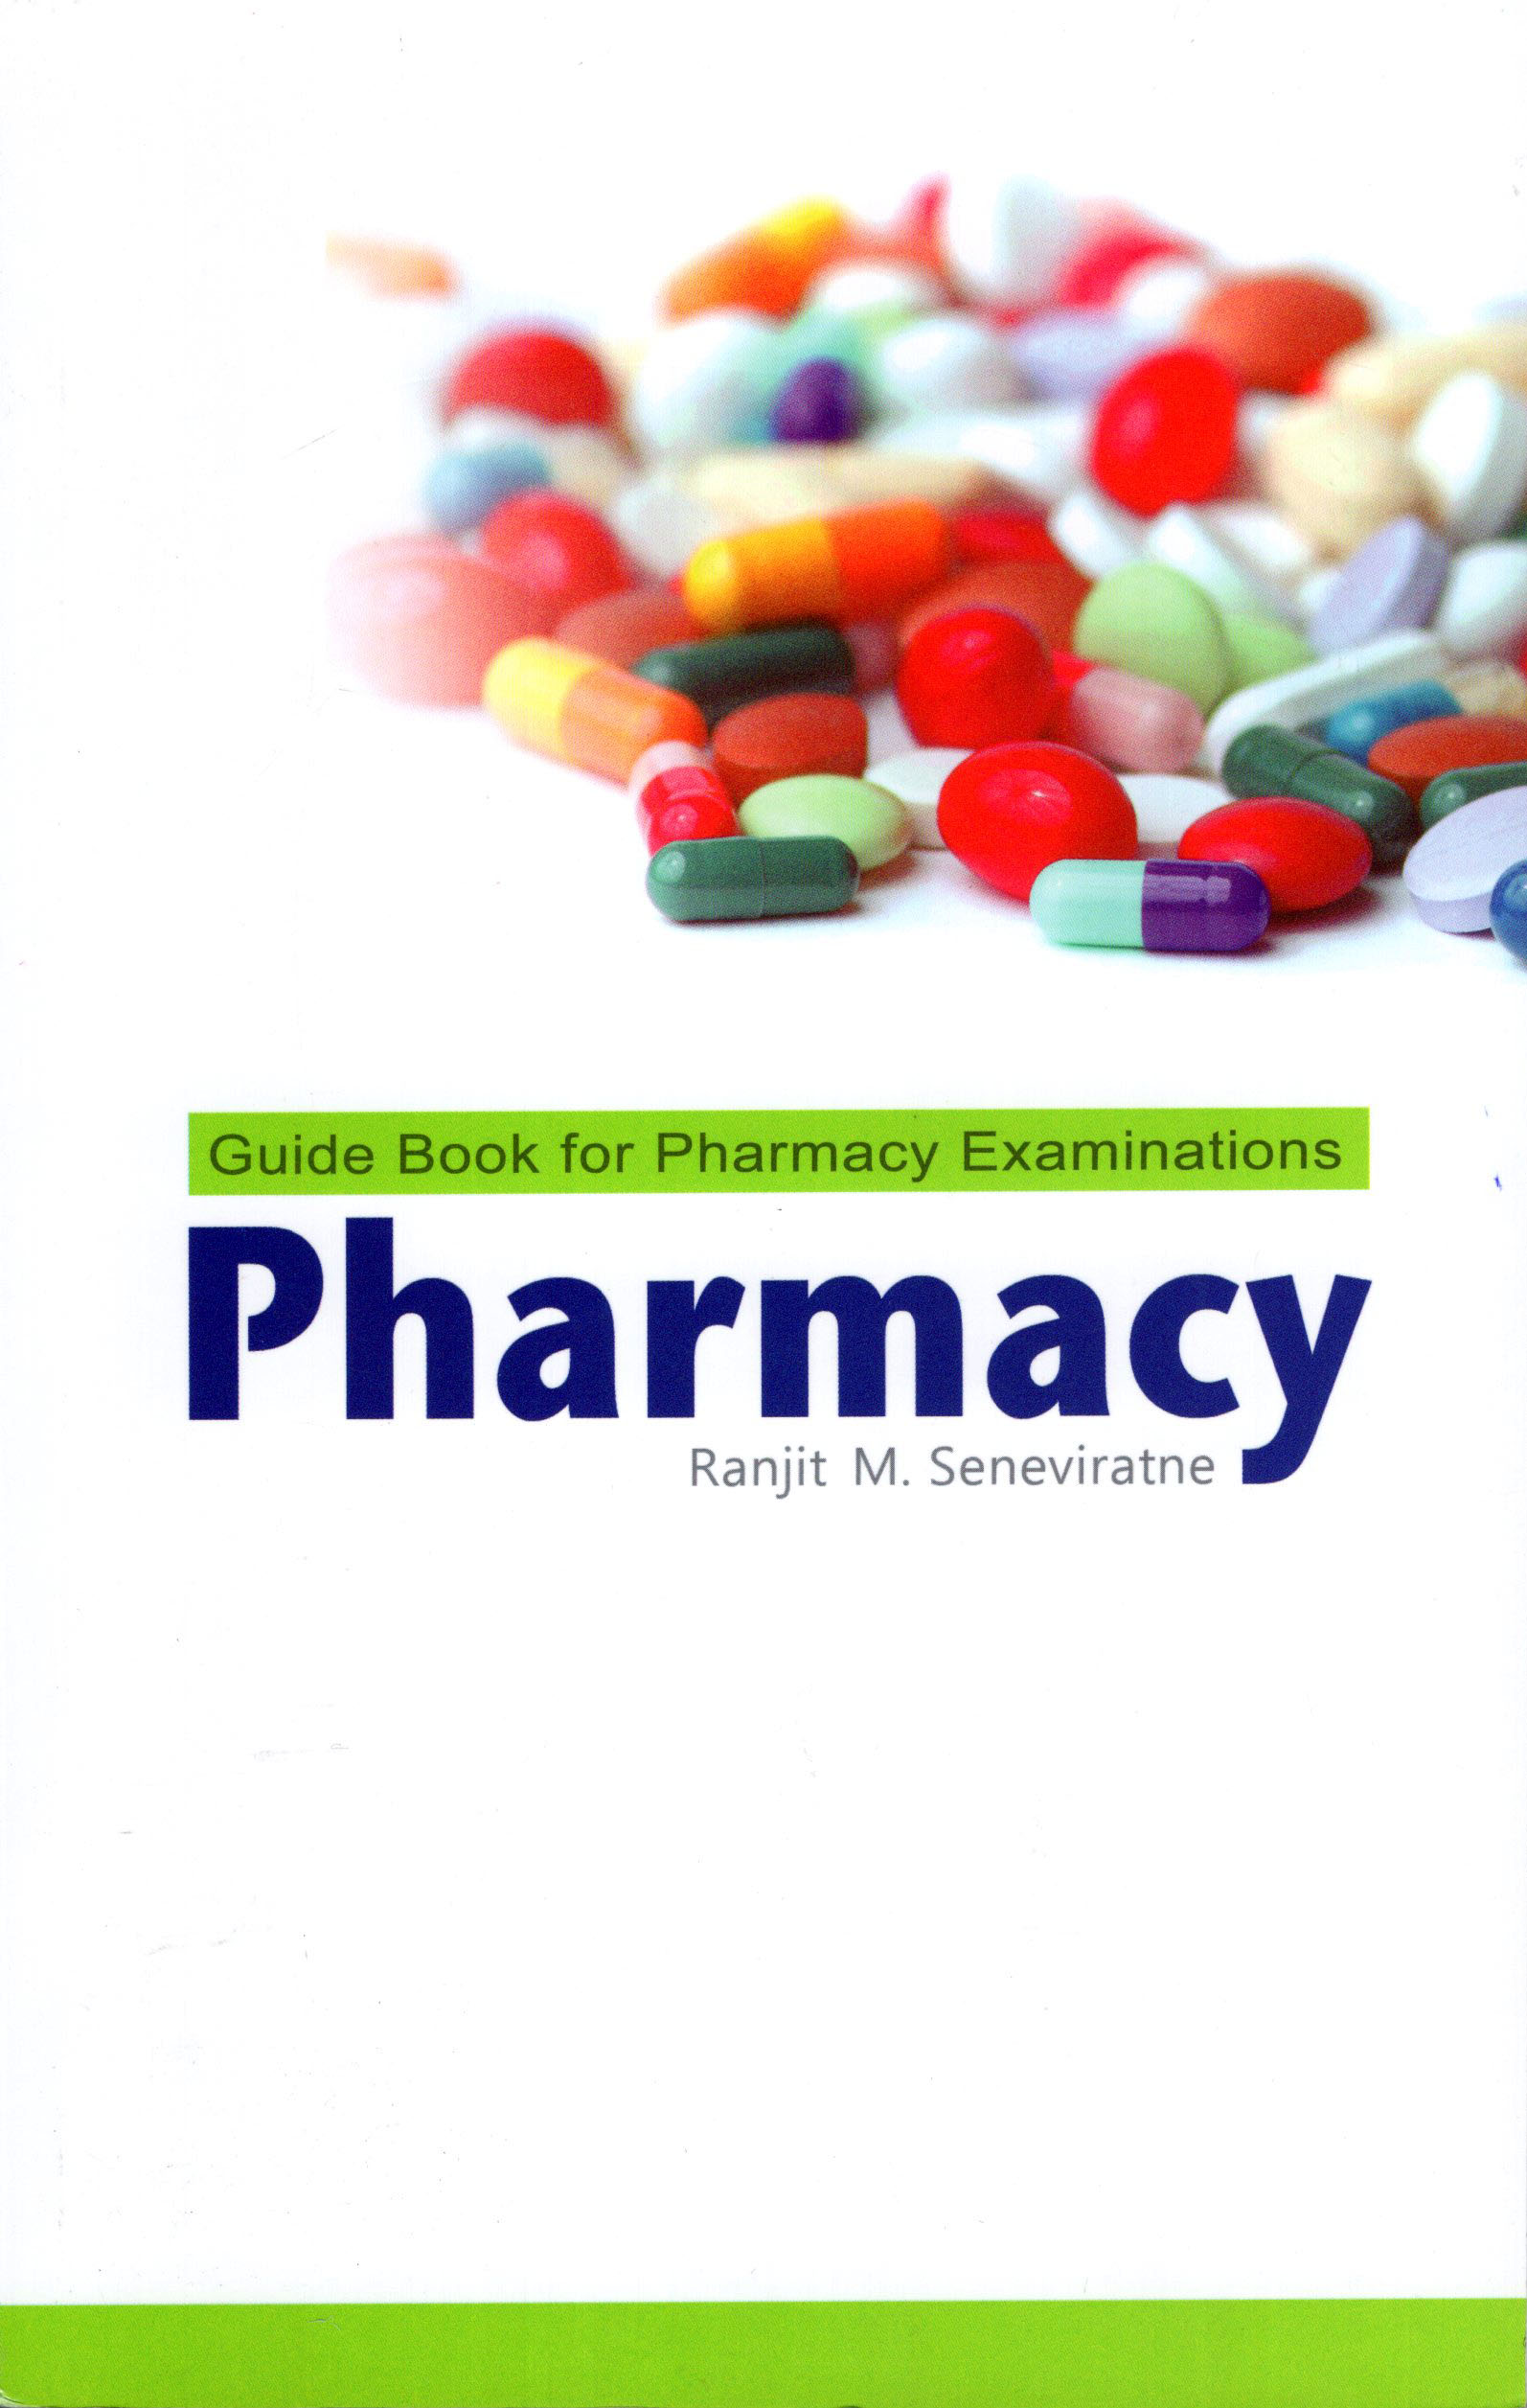 Pharmacy: Guide Book for Pharmacy Examinations